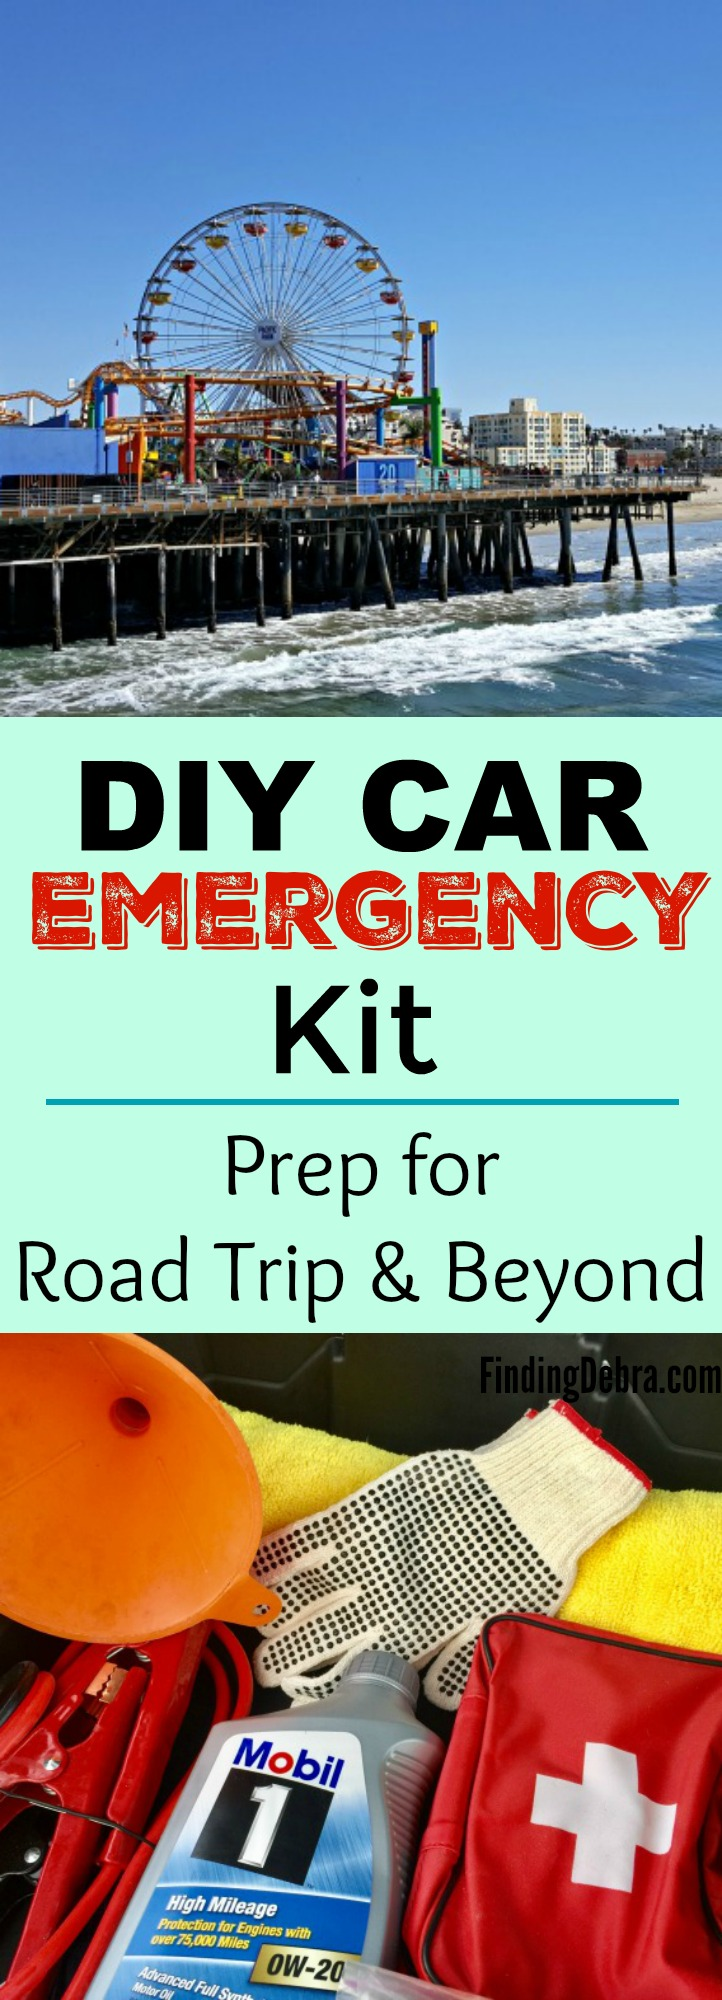 DIY Car Emergency Kit - Prep for Road Trip and Beyond